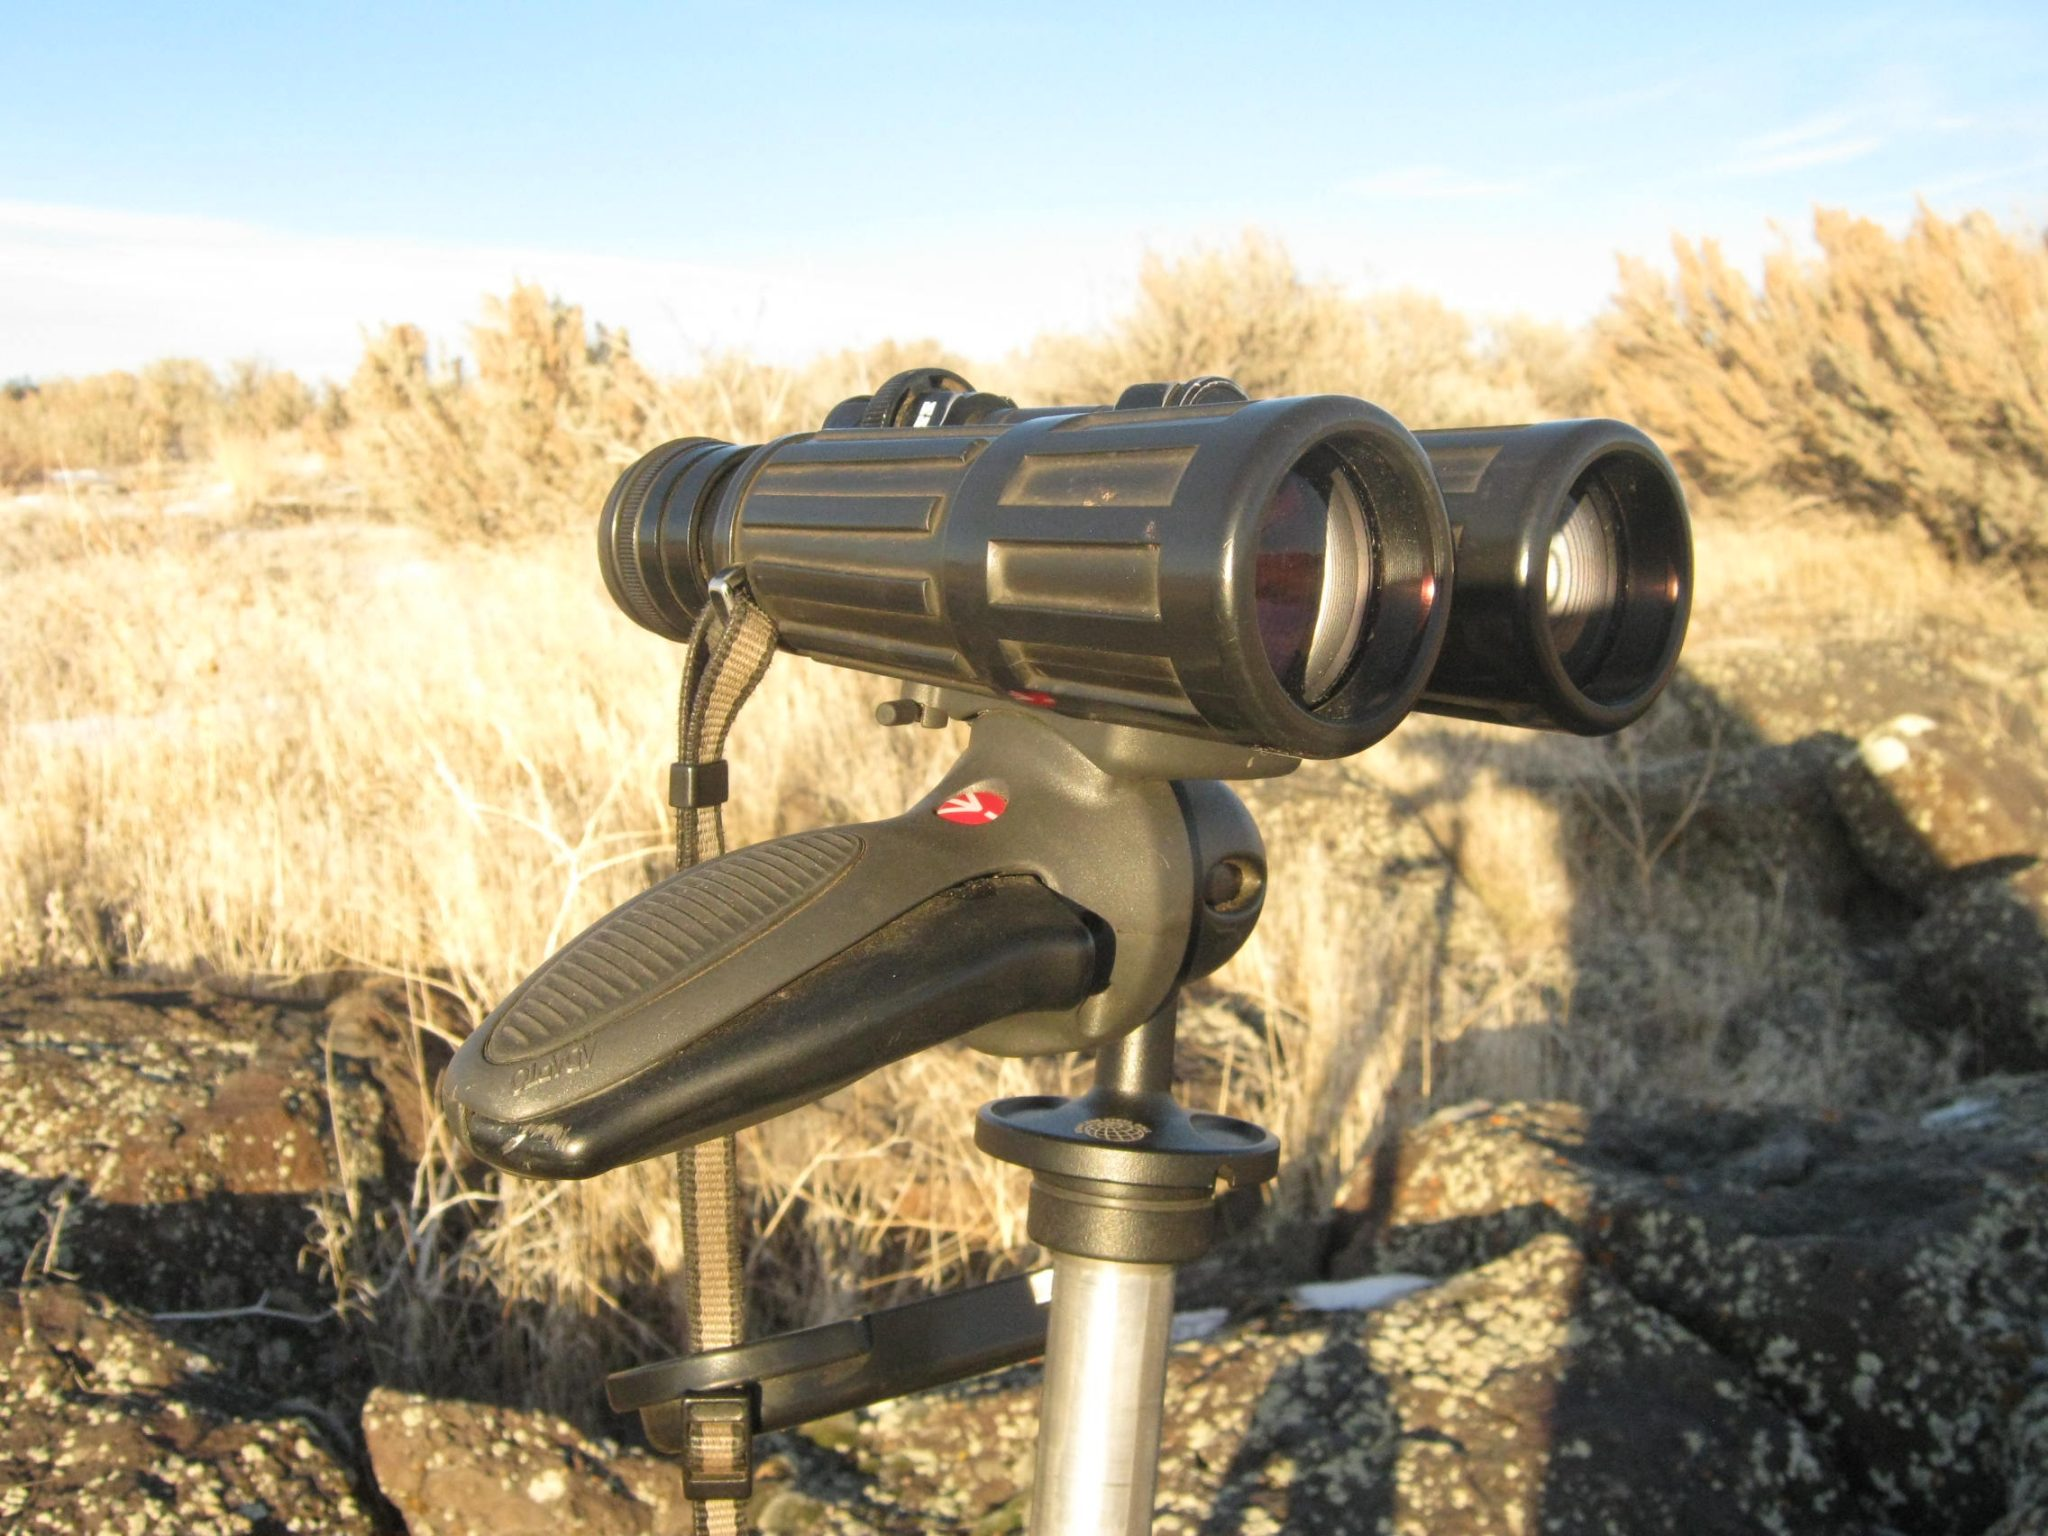 smooth adjustability ruggedness and lightweight defines the manfrotto 324rc2